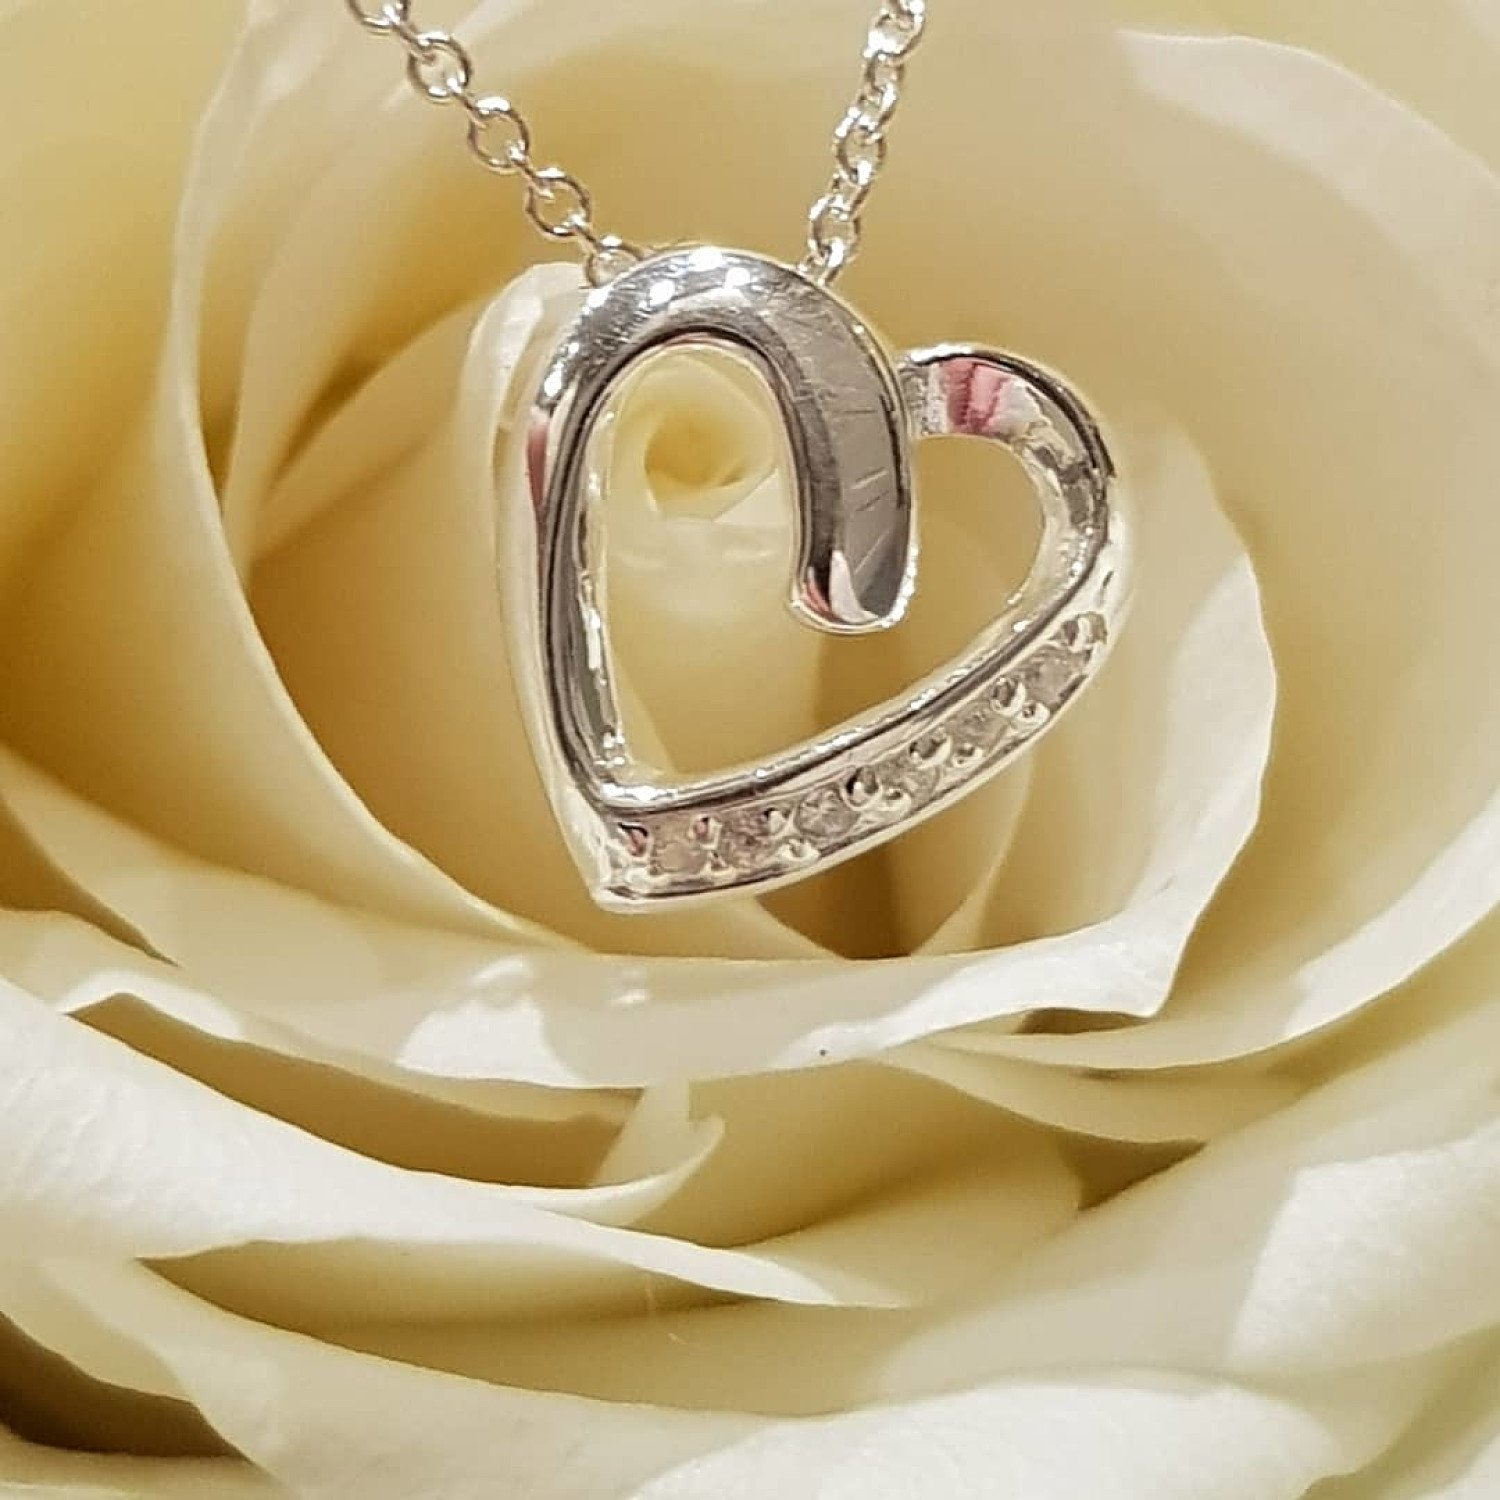 ONLY AVAILABLE ON SNIZL - SPECIAL 20% DISCOUNT ON SILVER JEWELLERY FROM CALLIBEAU JEWELLERY